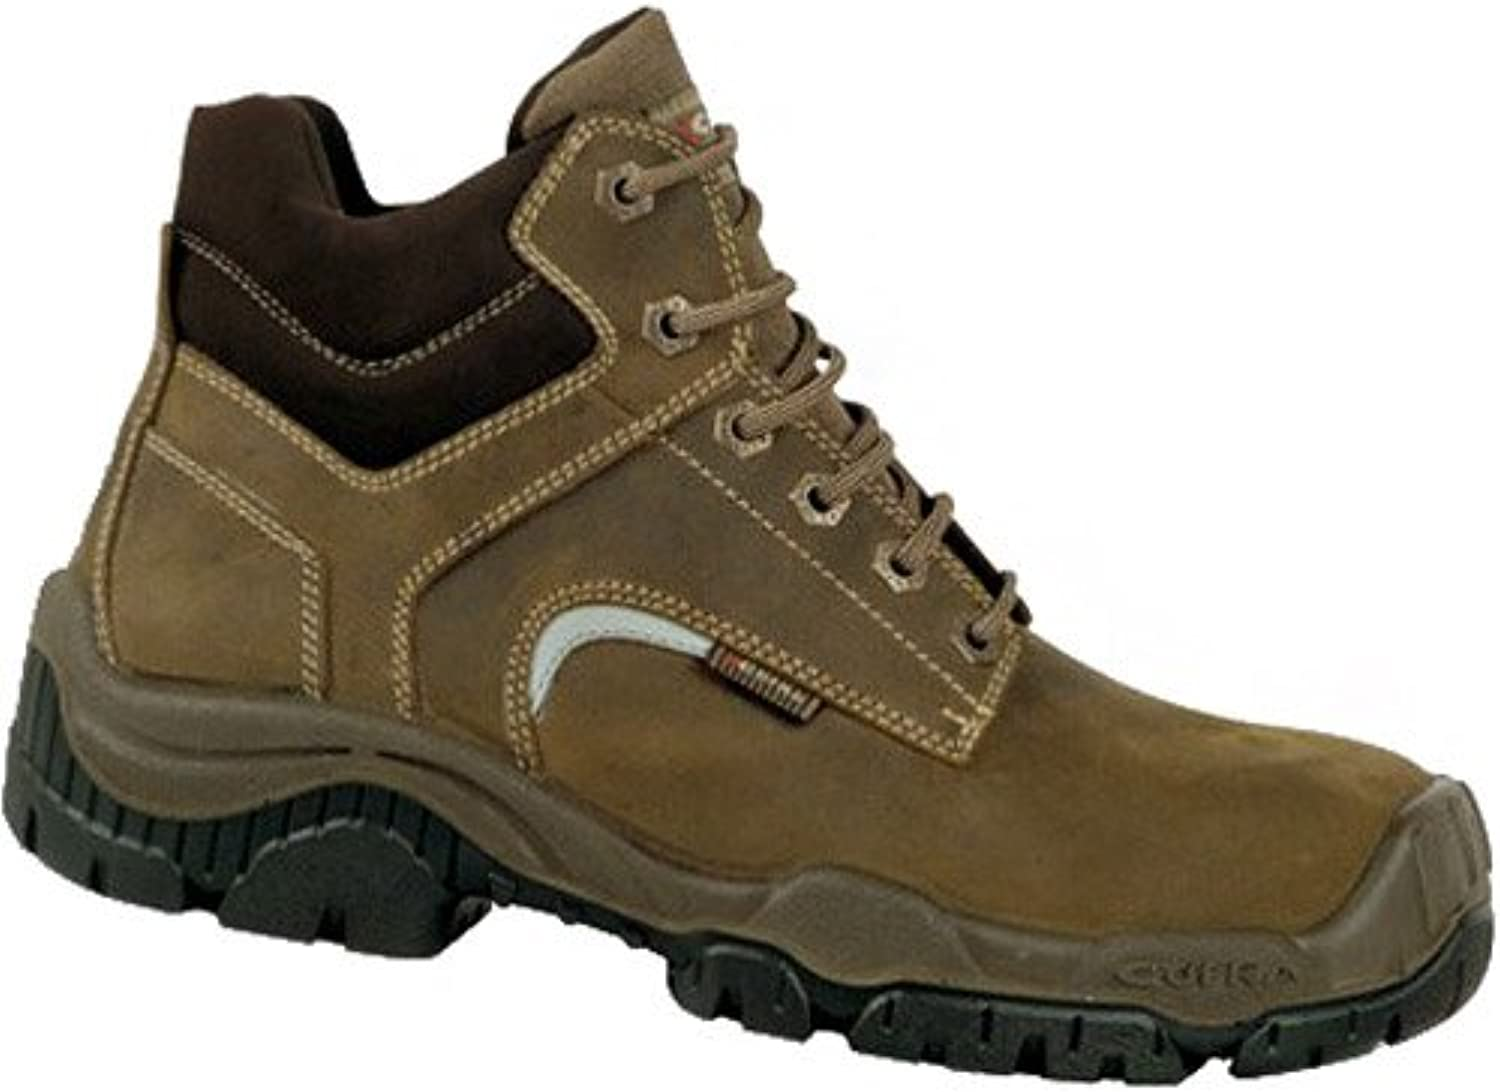 Cofra Safety Boot S3 SRC Montpelier, High Safety shoes